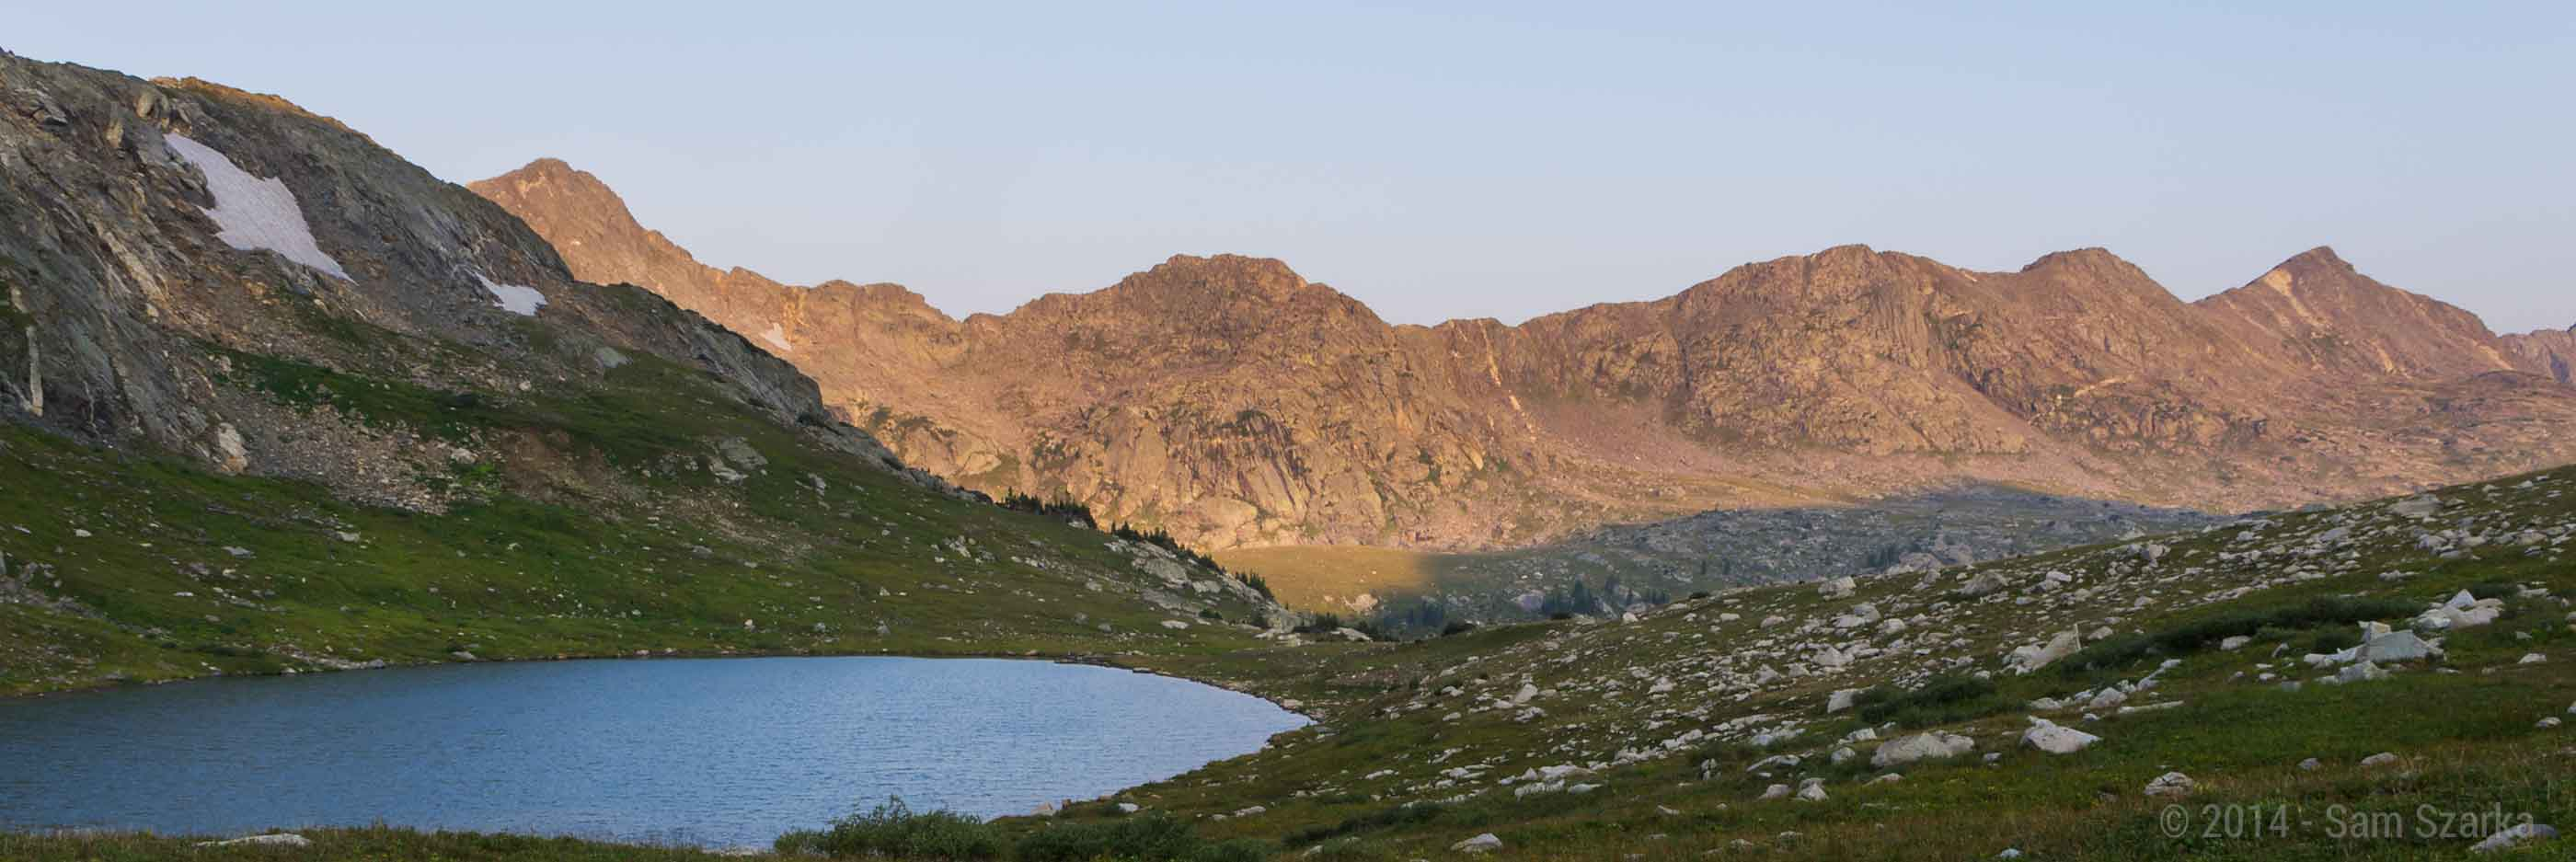 Treasure Vault Lake in the Holy Cross Wilderness